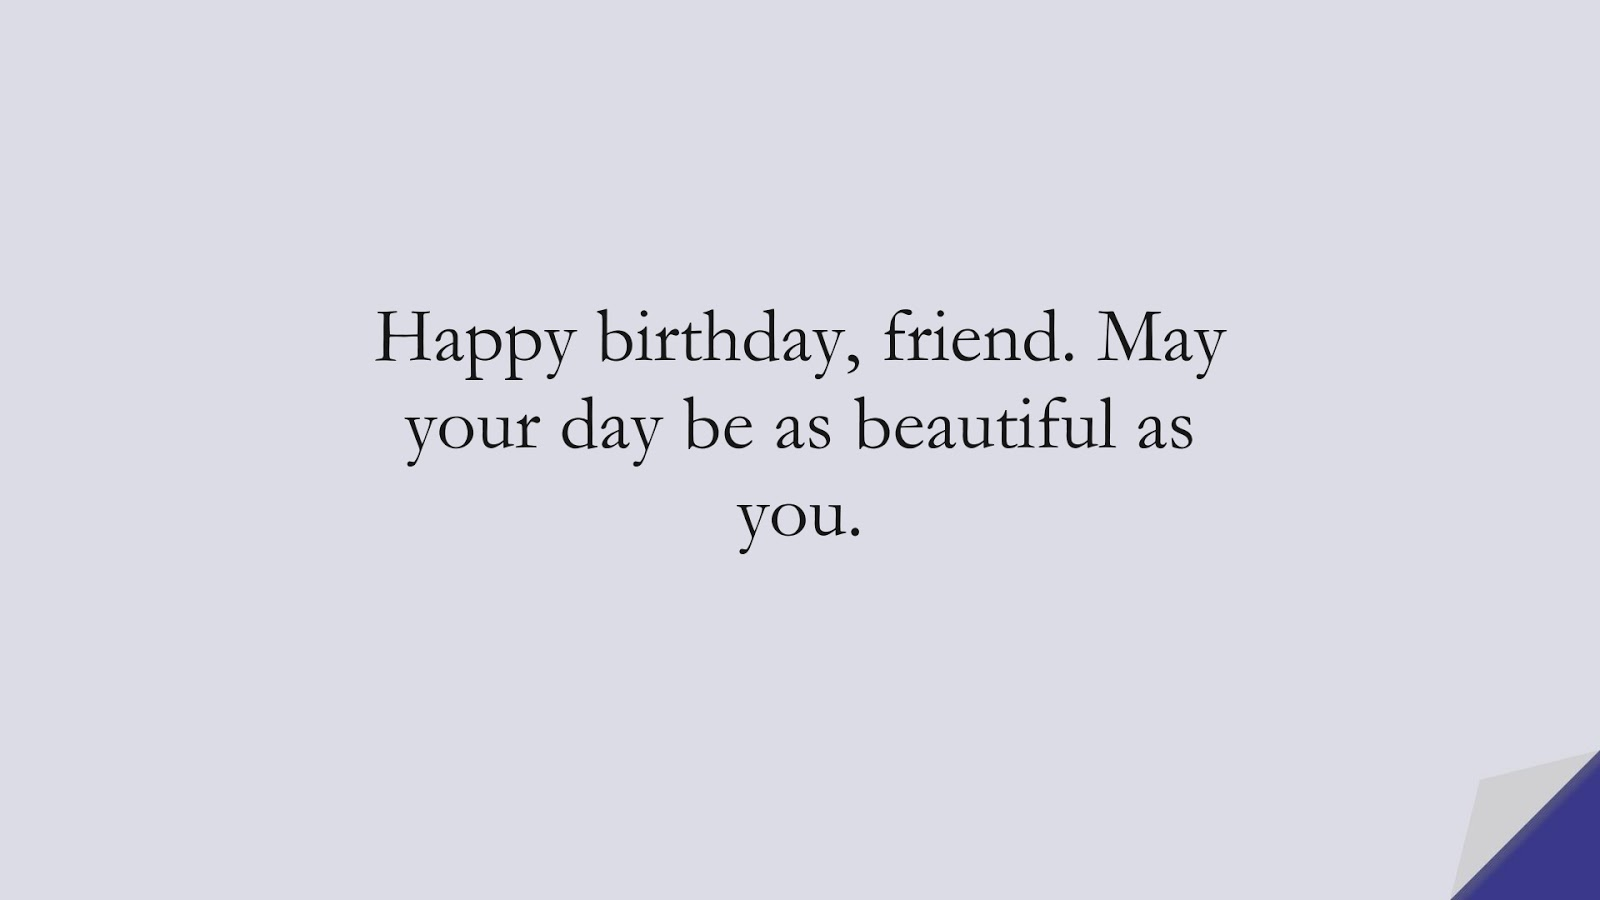 Happy birthday, friend. May your day be as beautiful as you.FALSE